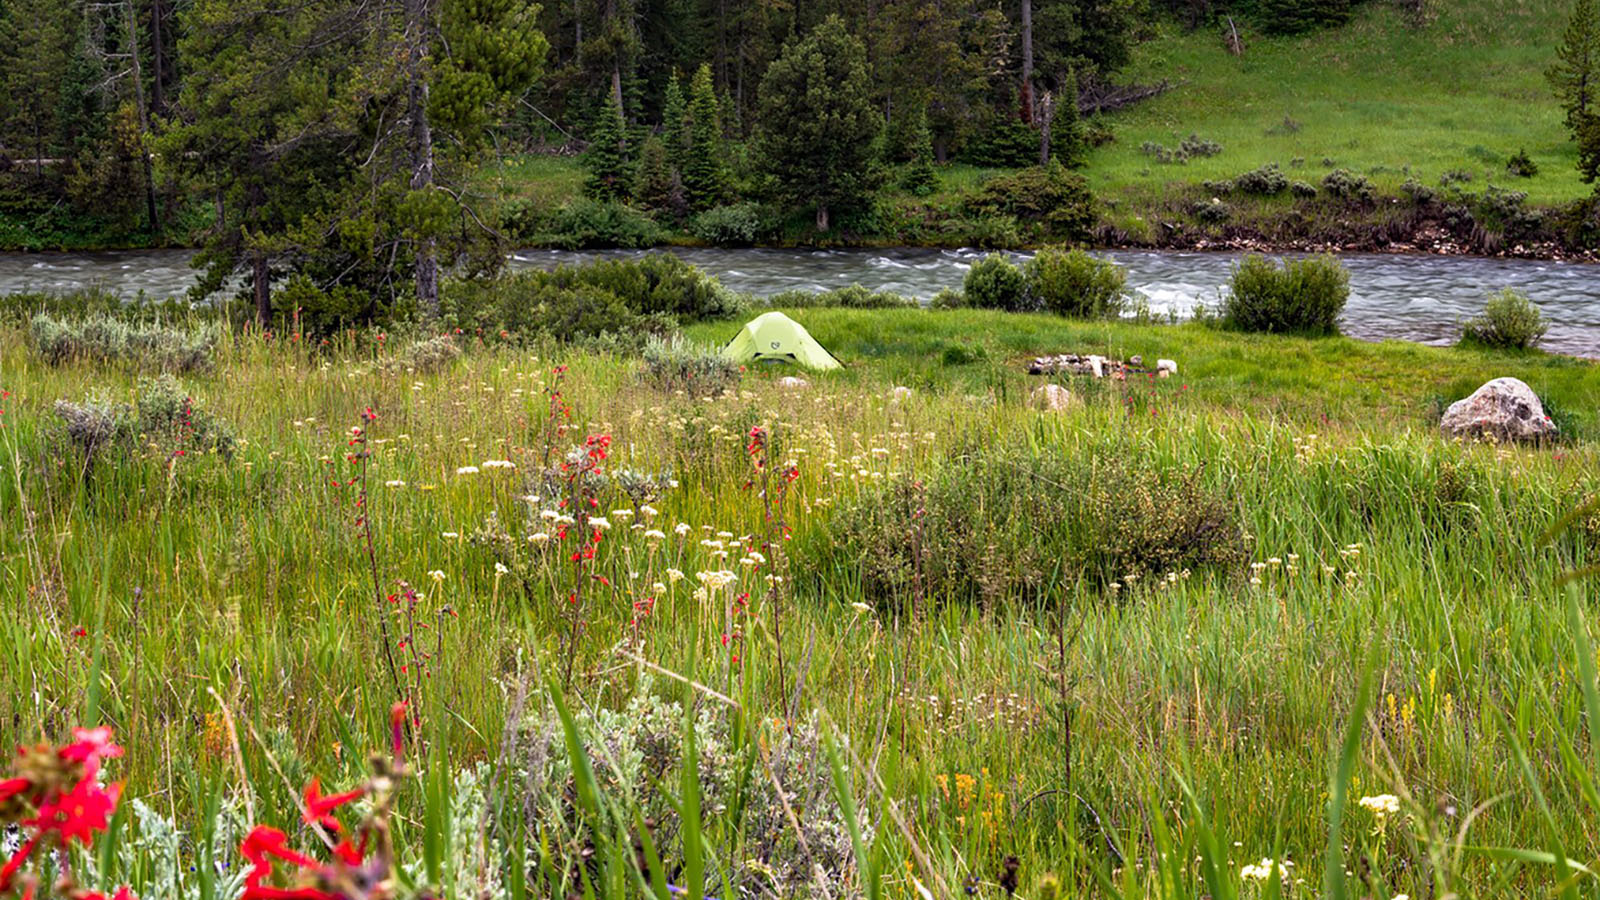 Campsite in a meadow